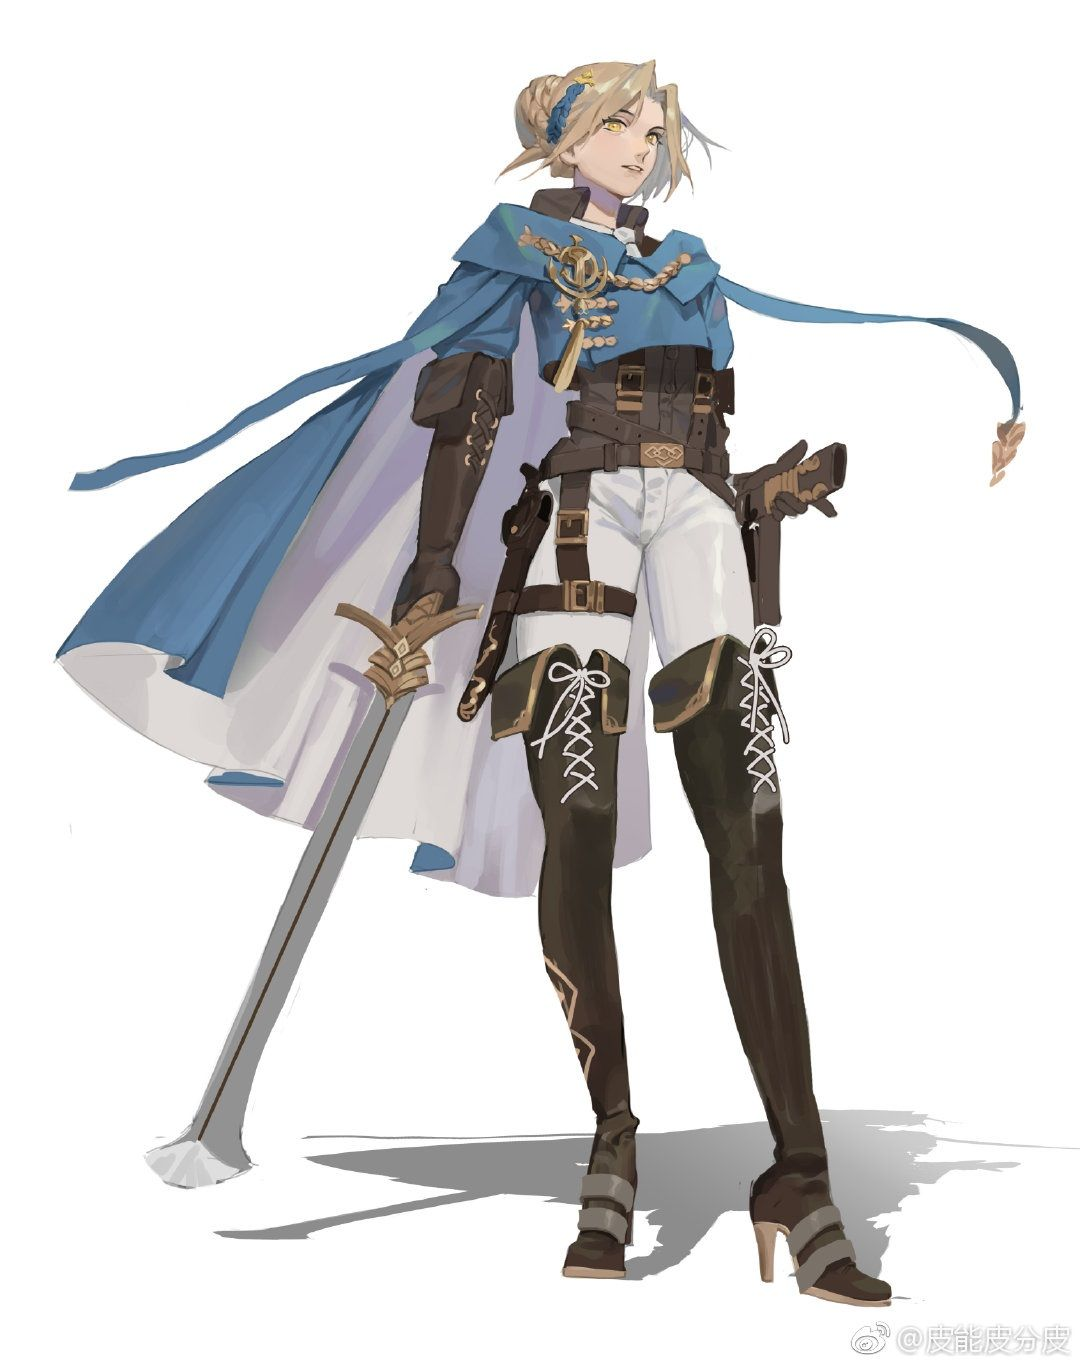 character design Inspiration Black is part of Best Character Design Inspiration Images In - swordmage